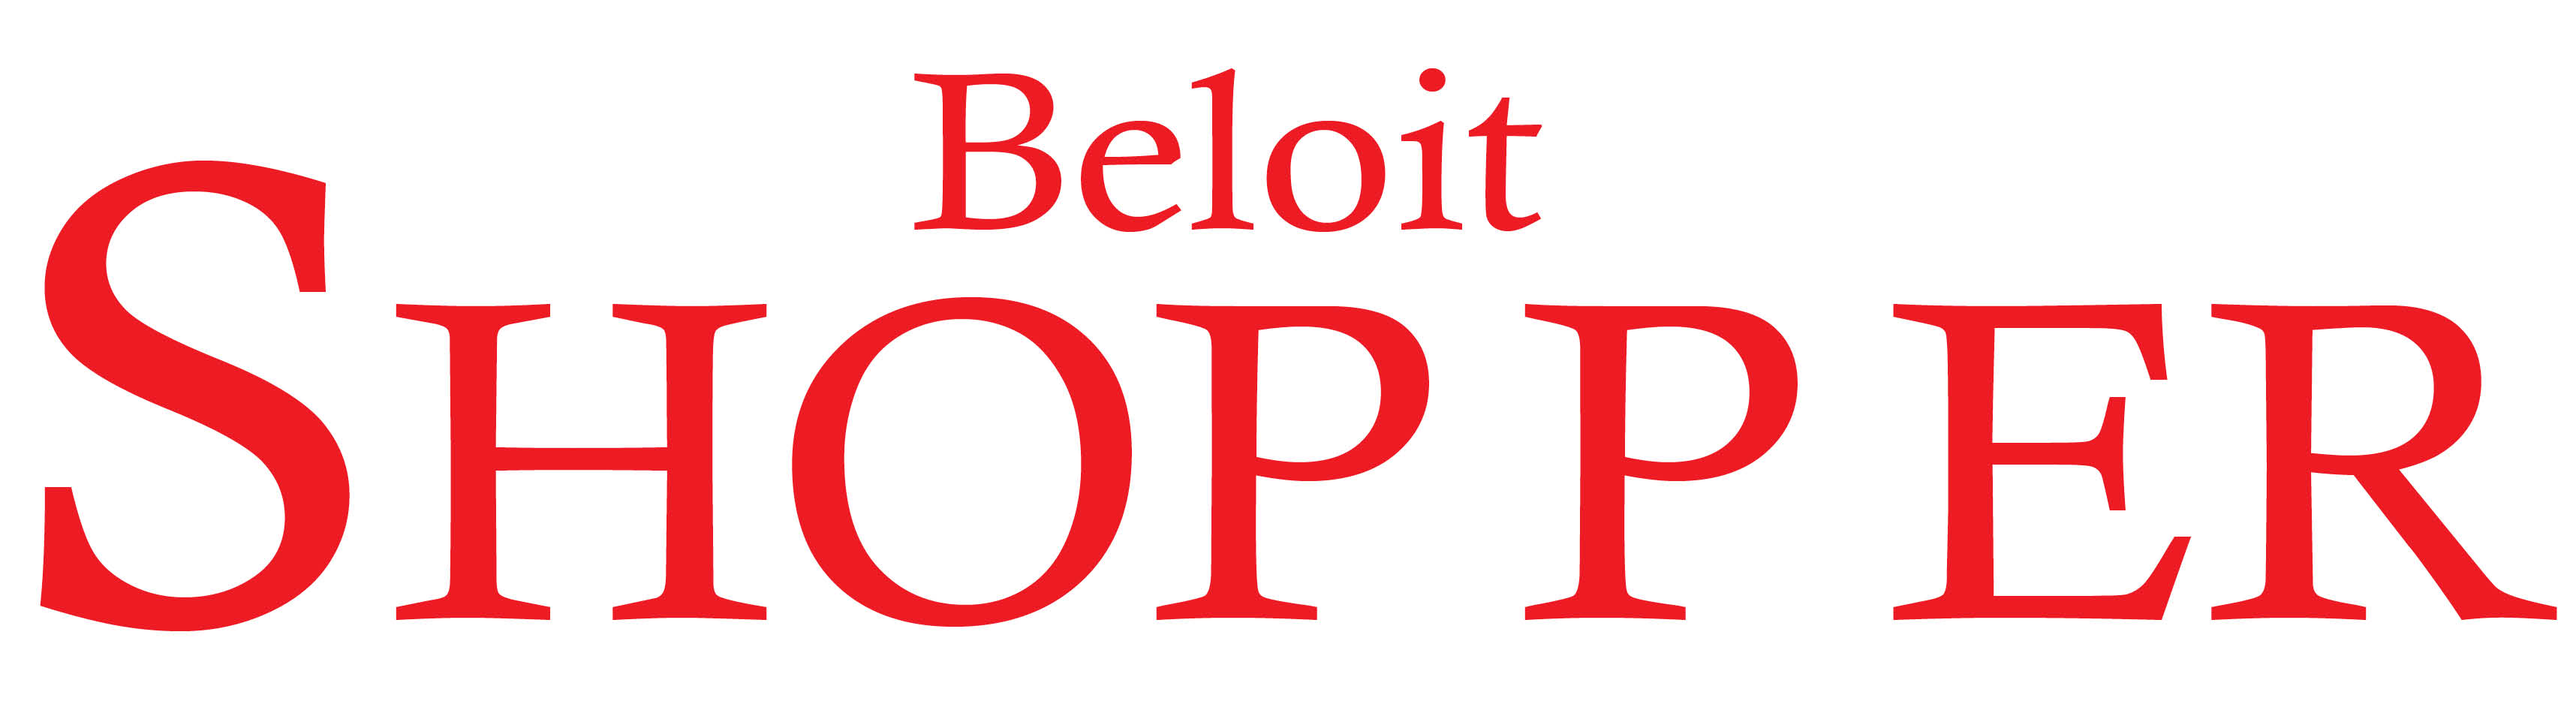 7/19/18 Beloit Shopper